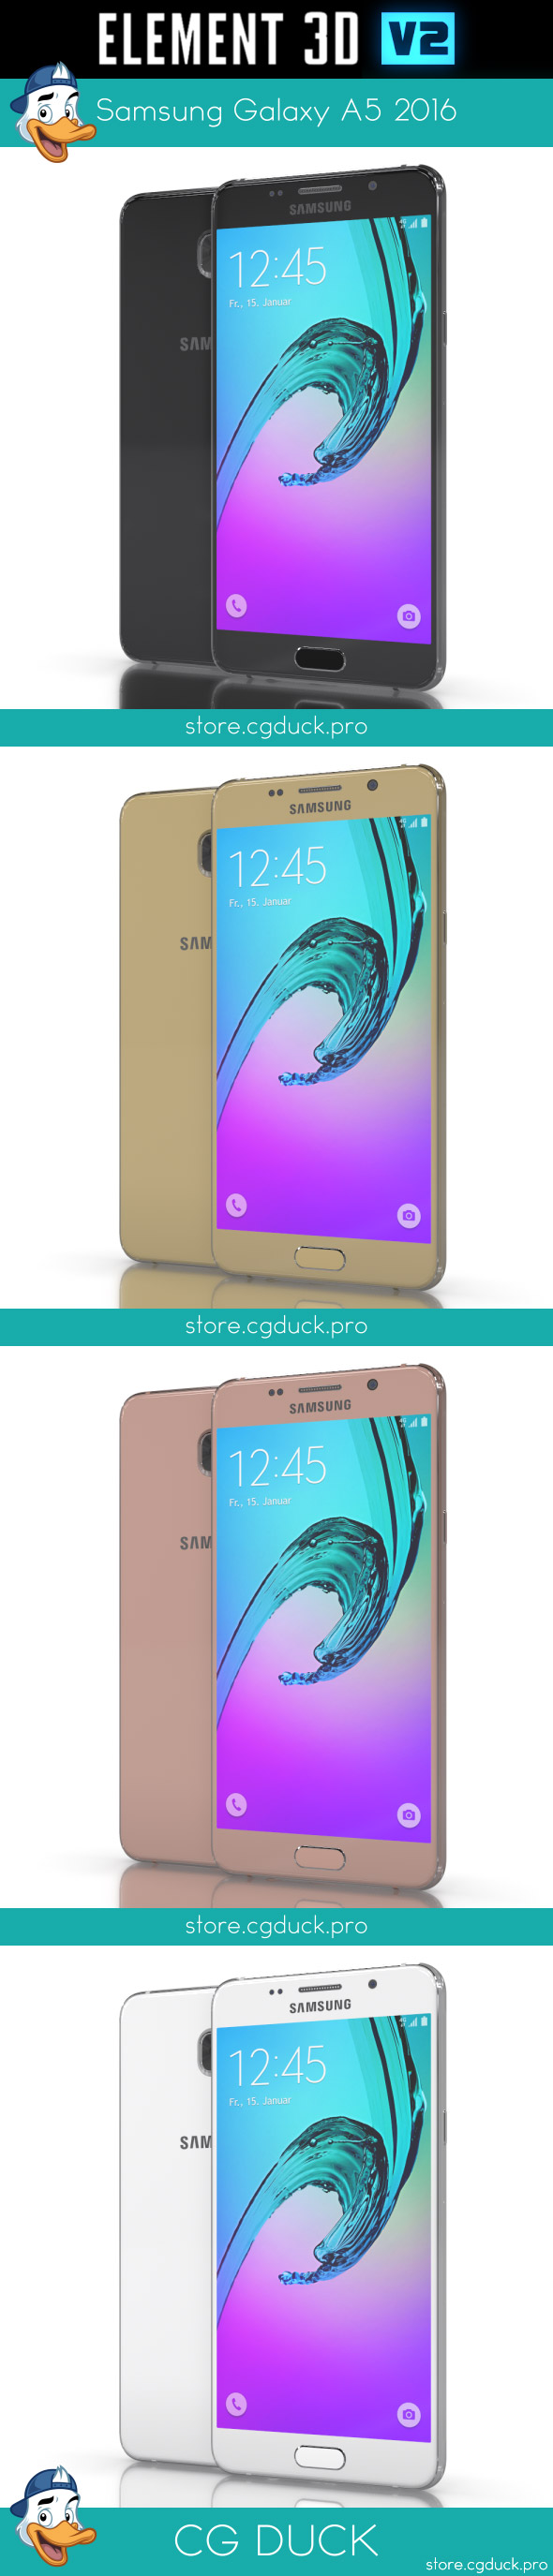 Samsung Galaxy A5 2016 for Element 3D - 3DOcean Item for Sale